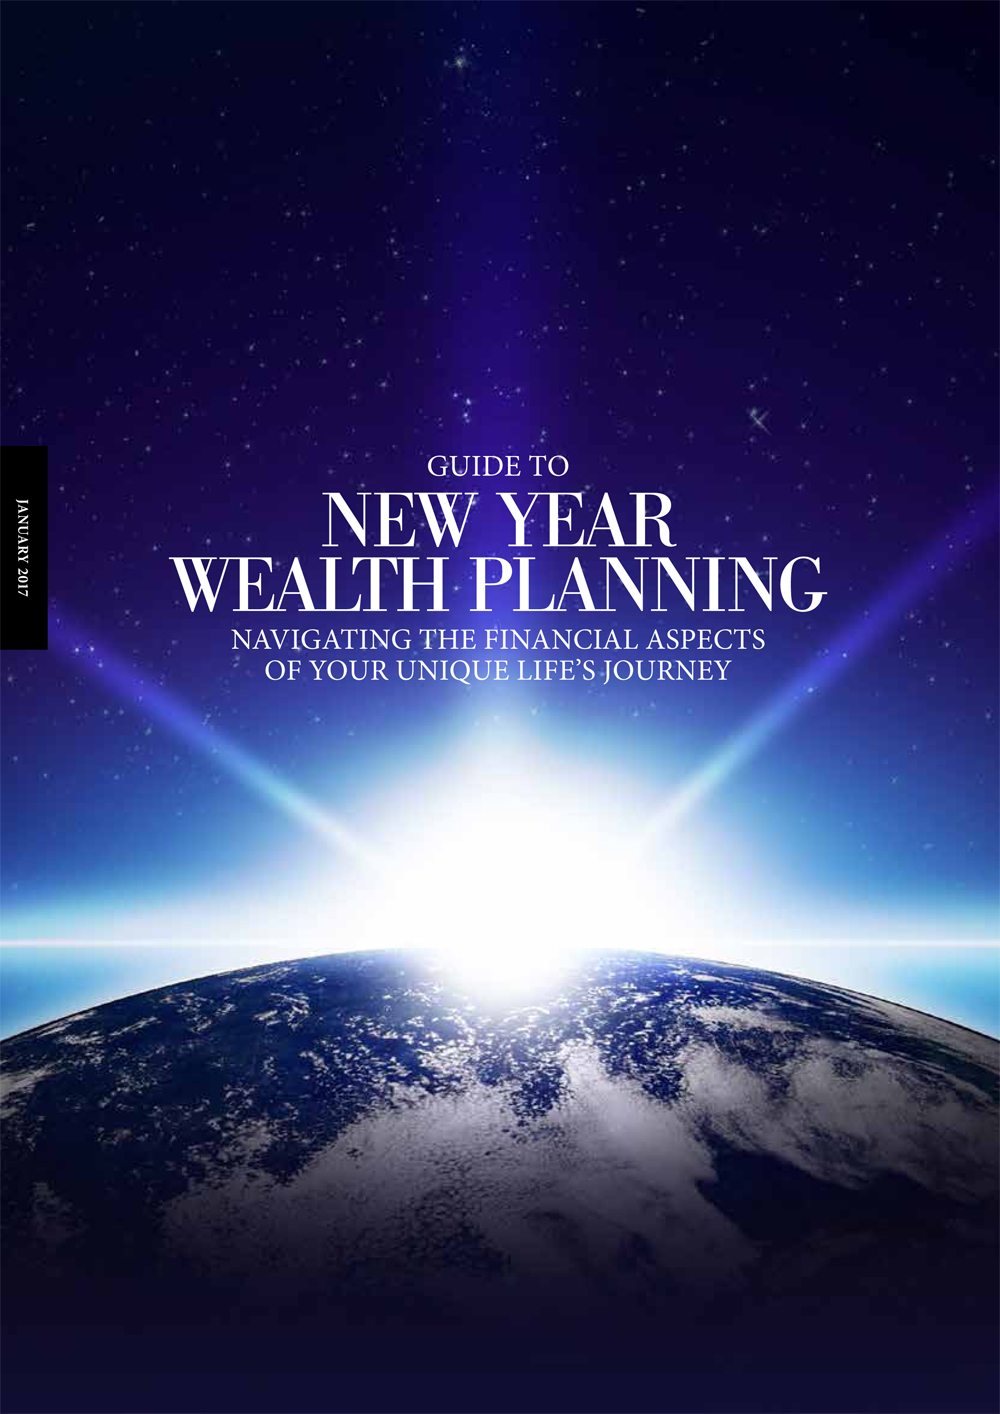 Guide To New Year Wealth Planning